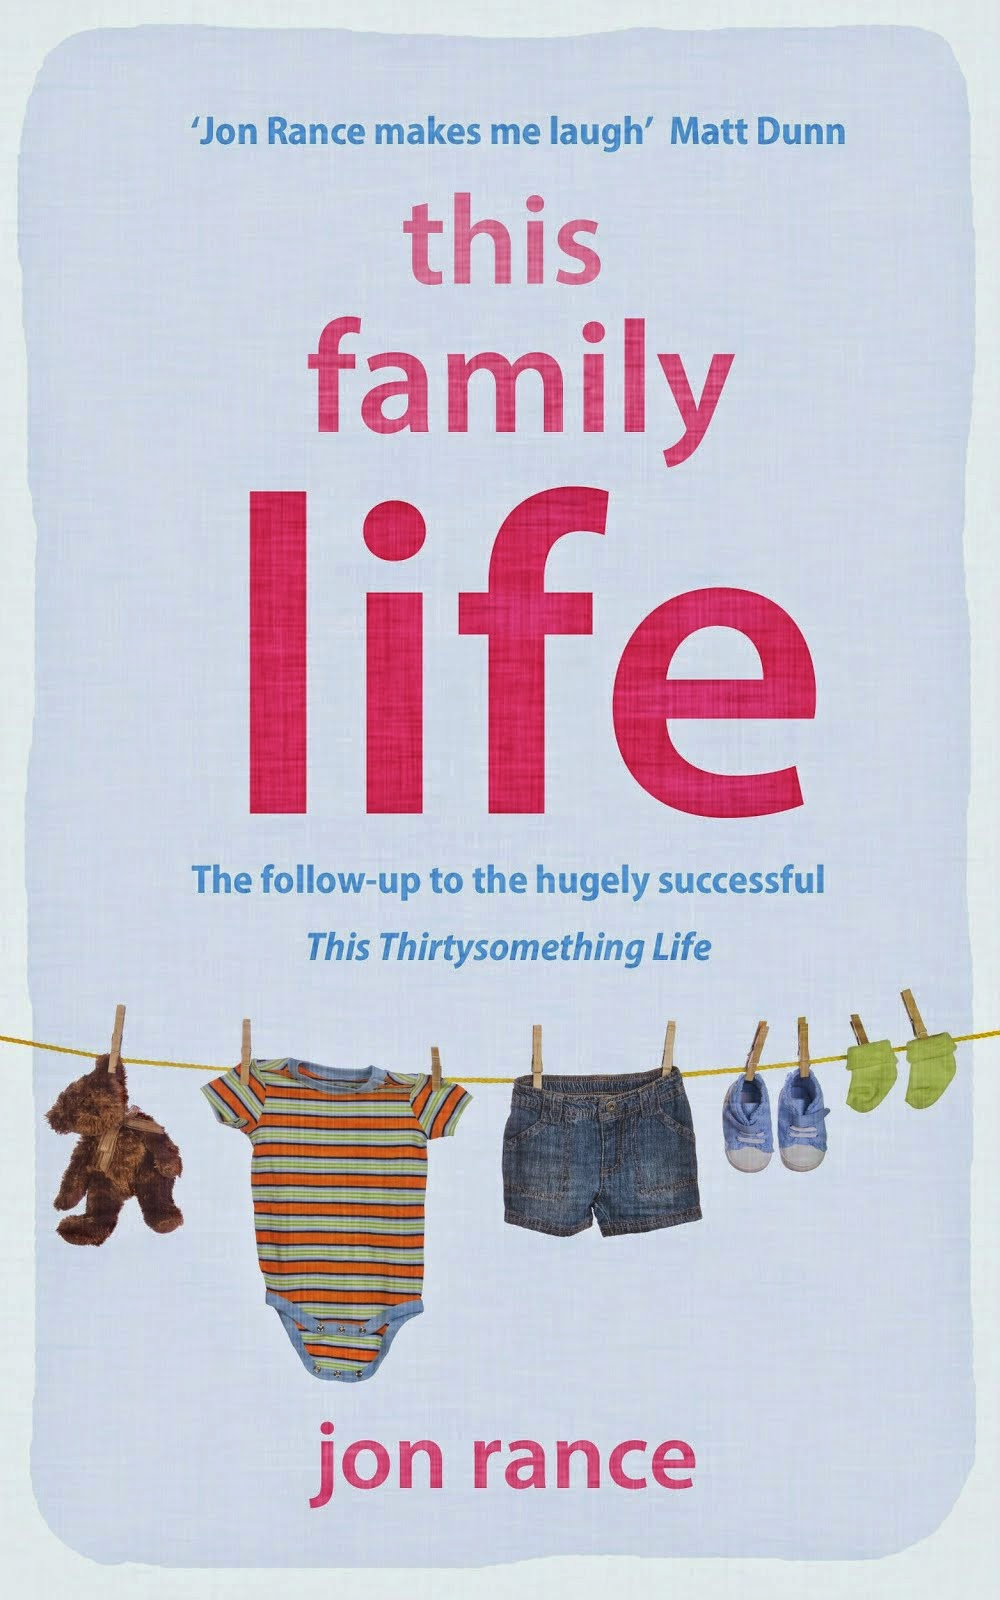 BUY THIS FAMILY LIFE 99p!